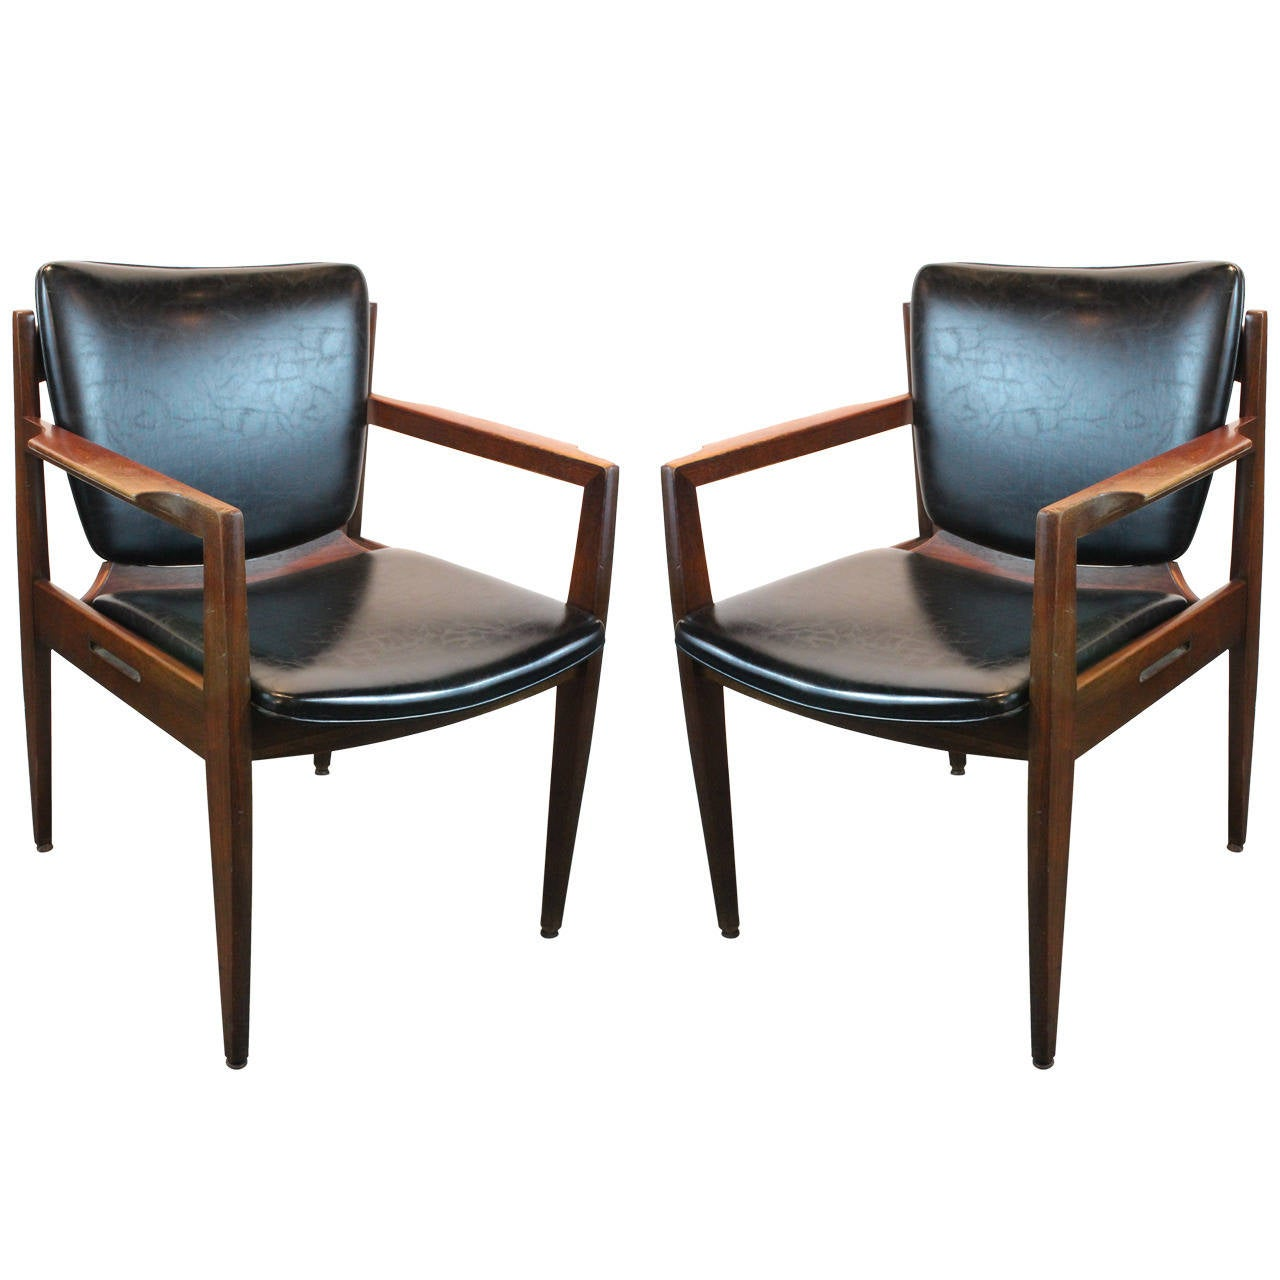 thonet chair styles positions for scaling pair of mid century modern armchairs at 1stdibs